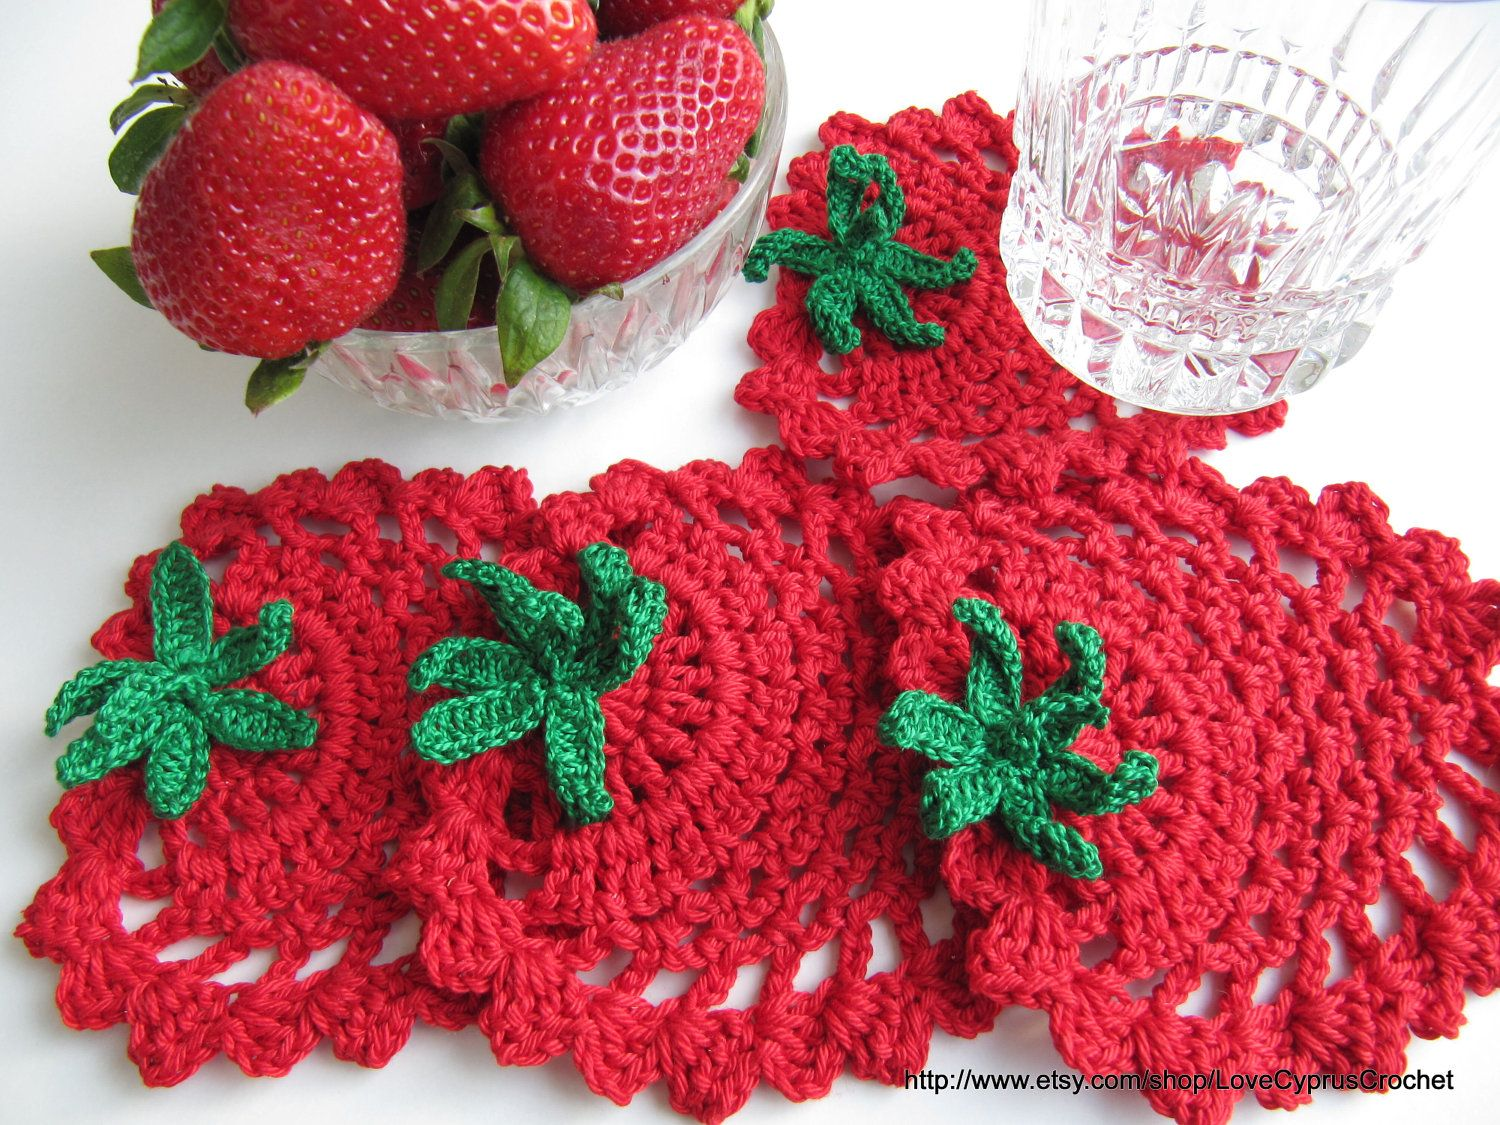 INSTANT DOWNLOAD PDF Crochet Pattern Red Strawberry Coaster, Easy ...